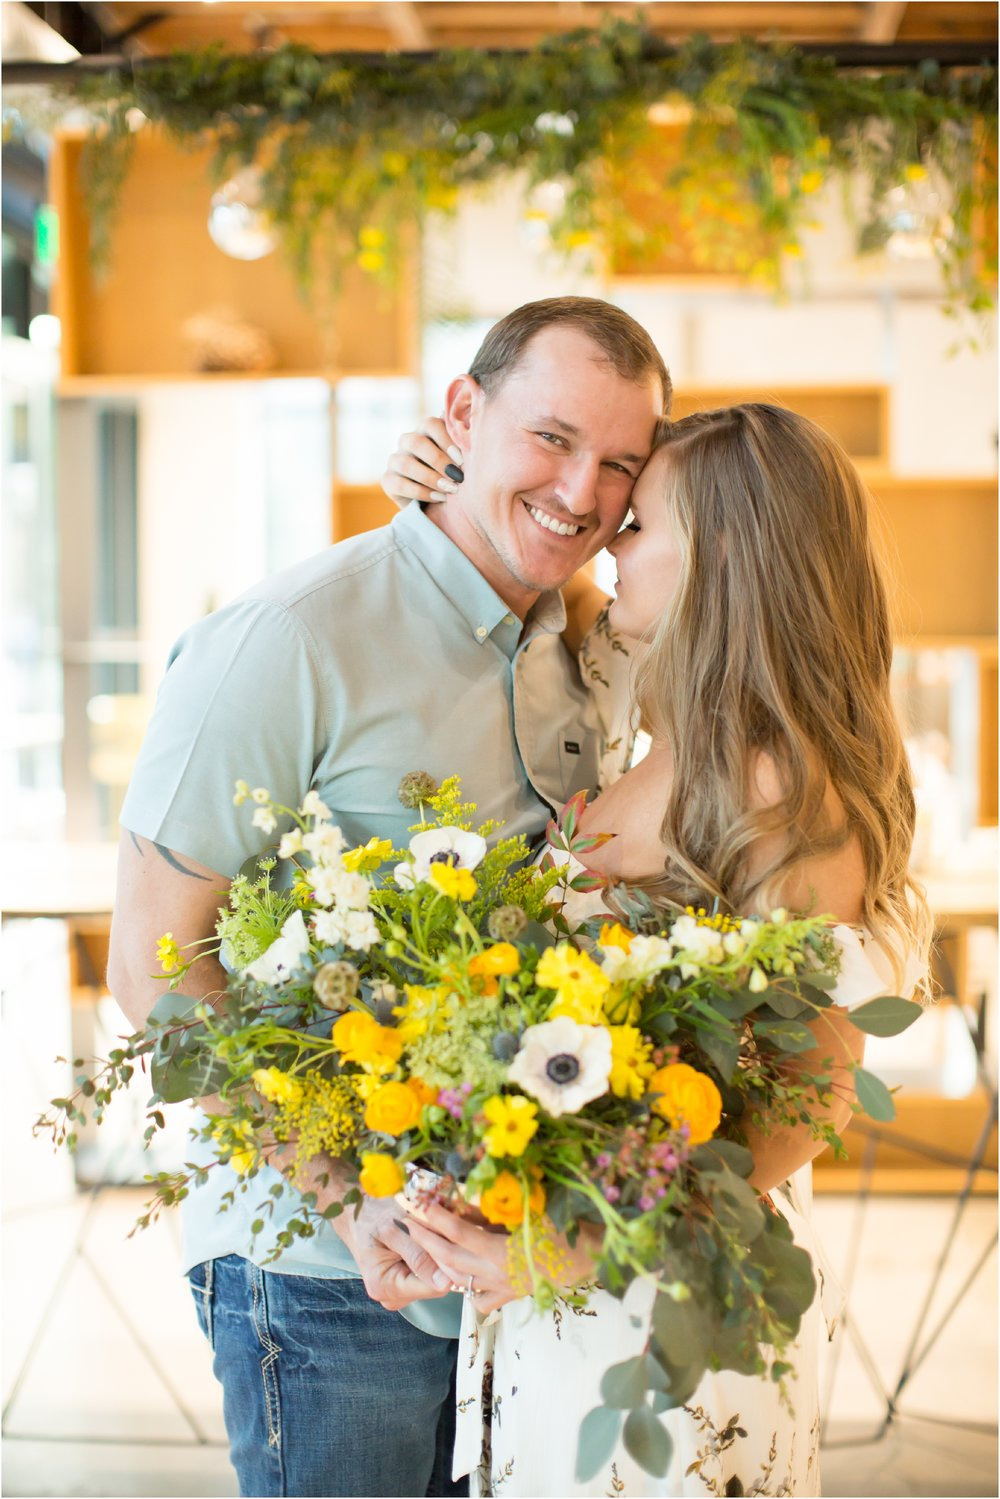 John + Kelcie - Wedding Florals - Floral Design - Ashley Hur - Hip Hip Hooray Dot Love